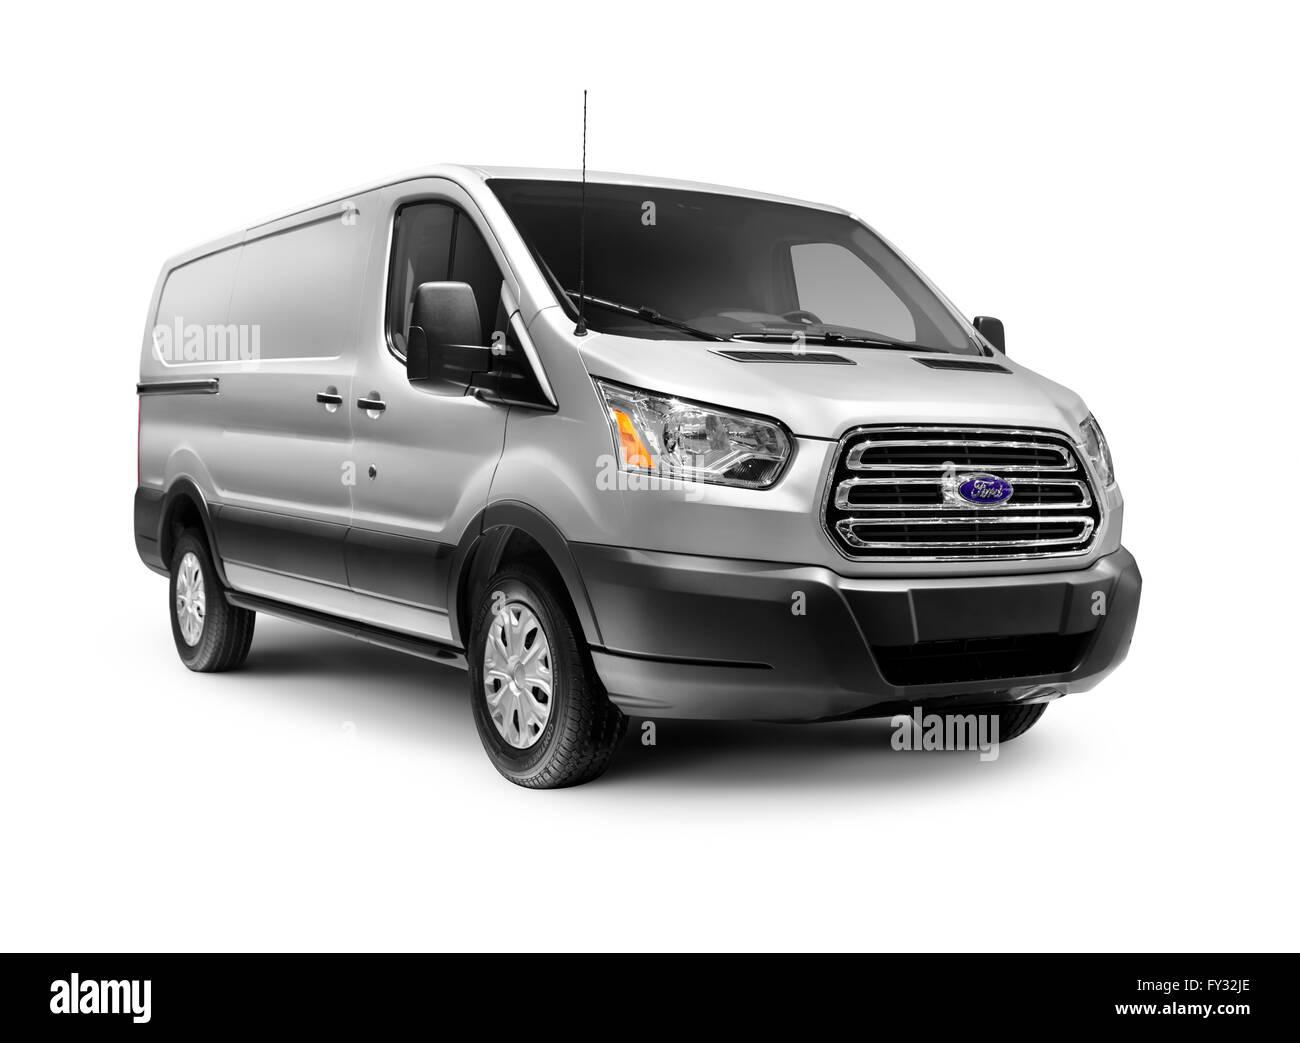 Silver 2016 ford transit 250 low roof rwb van commercial vehicle stock image